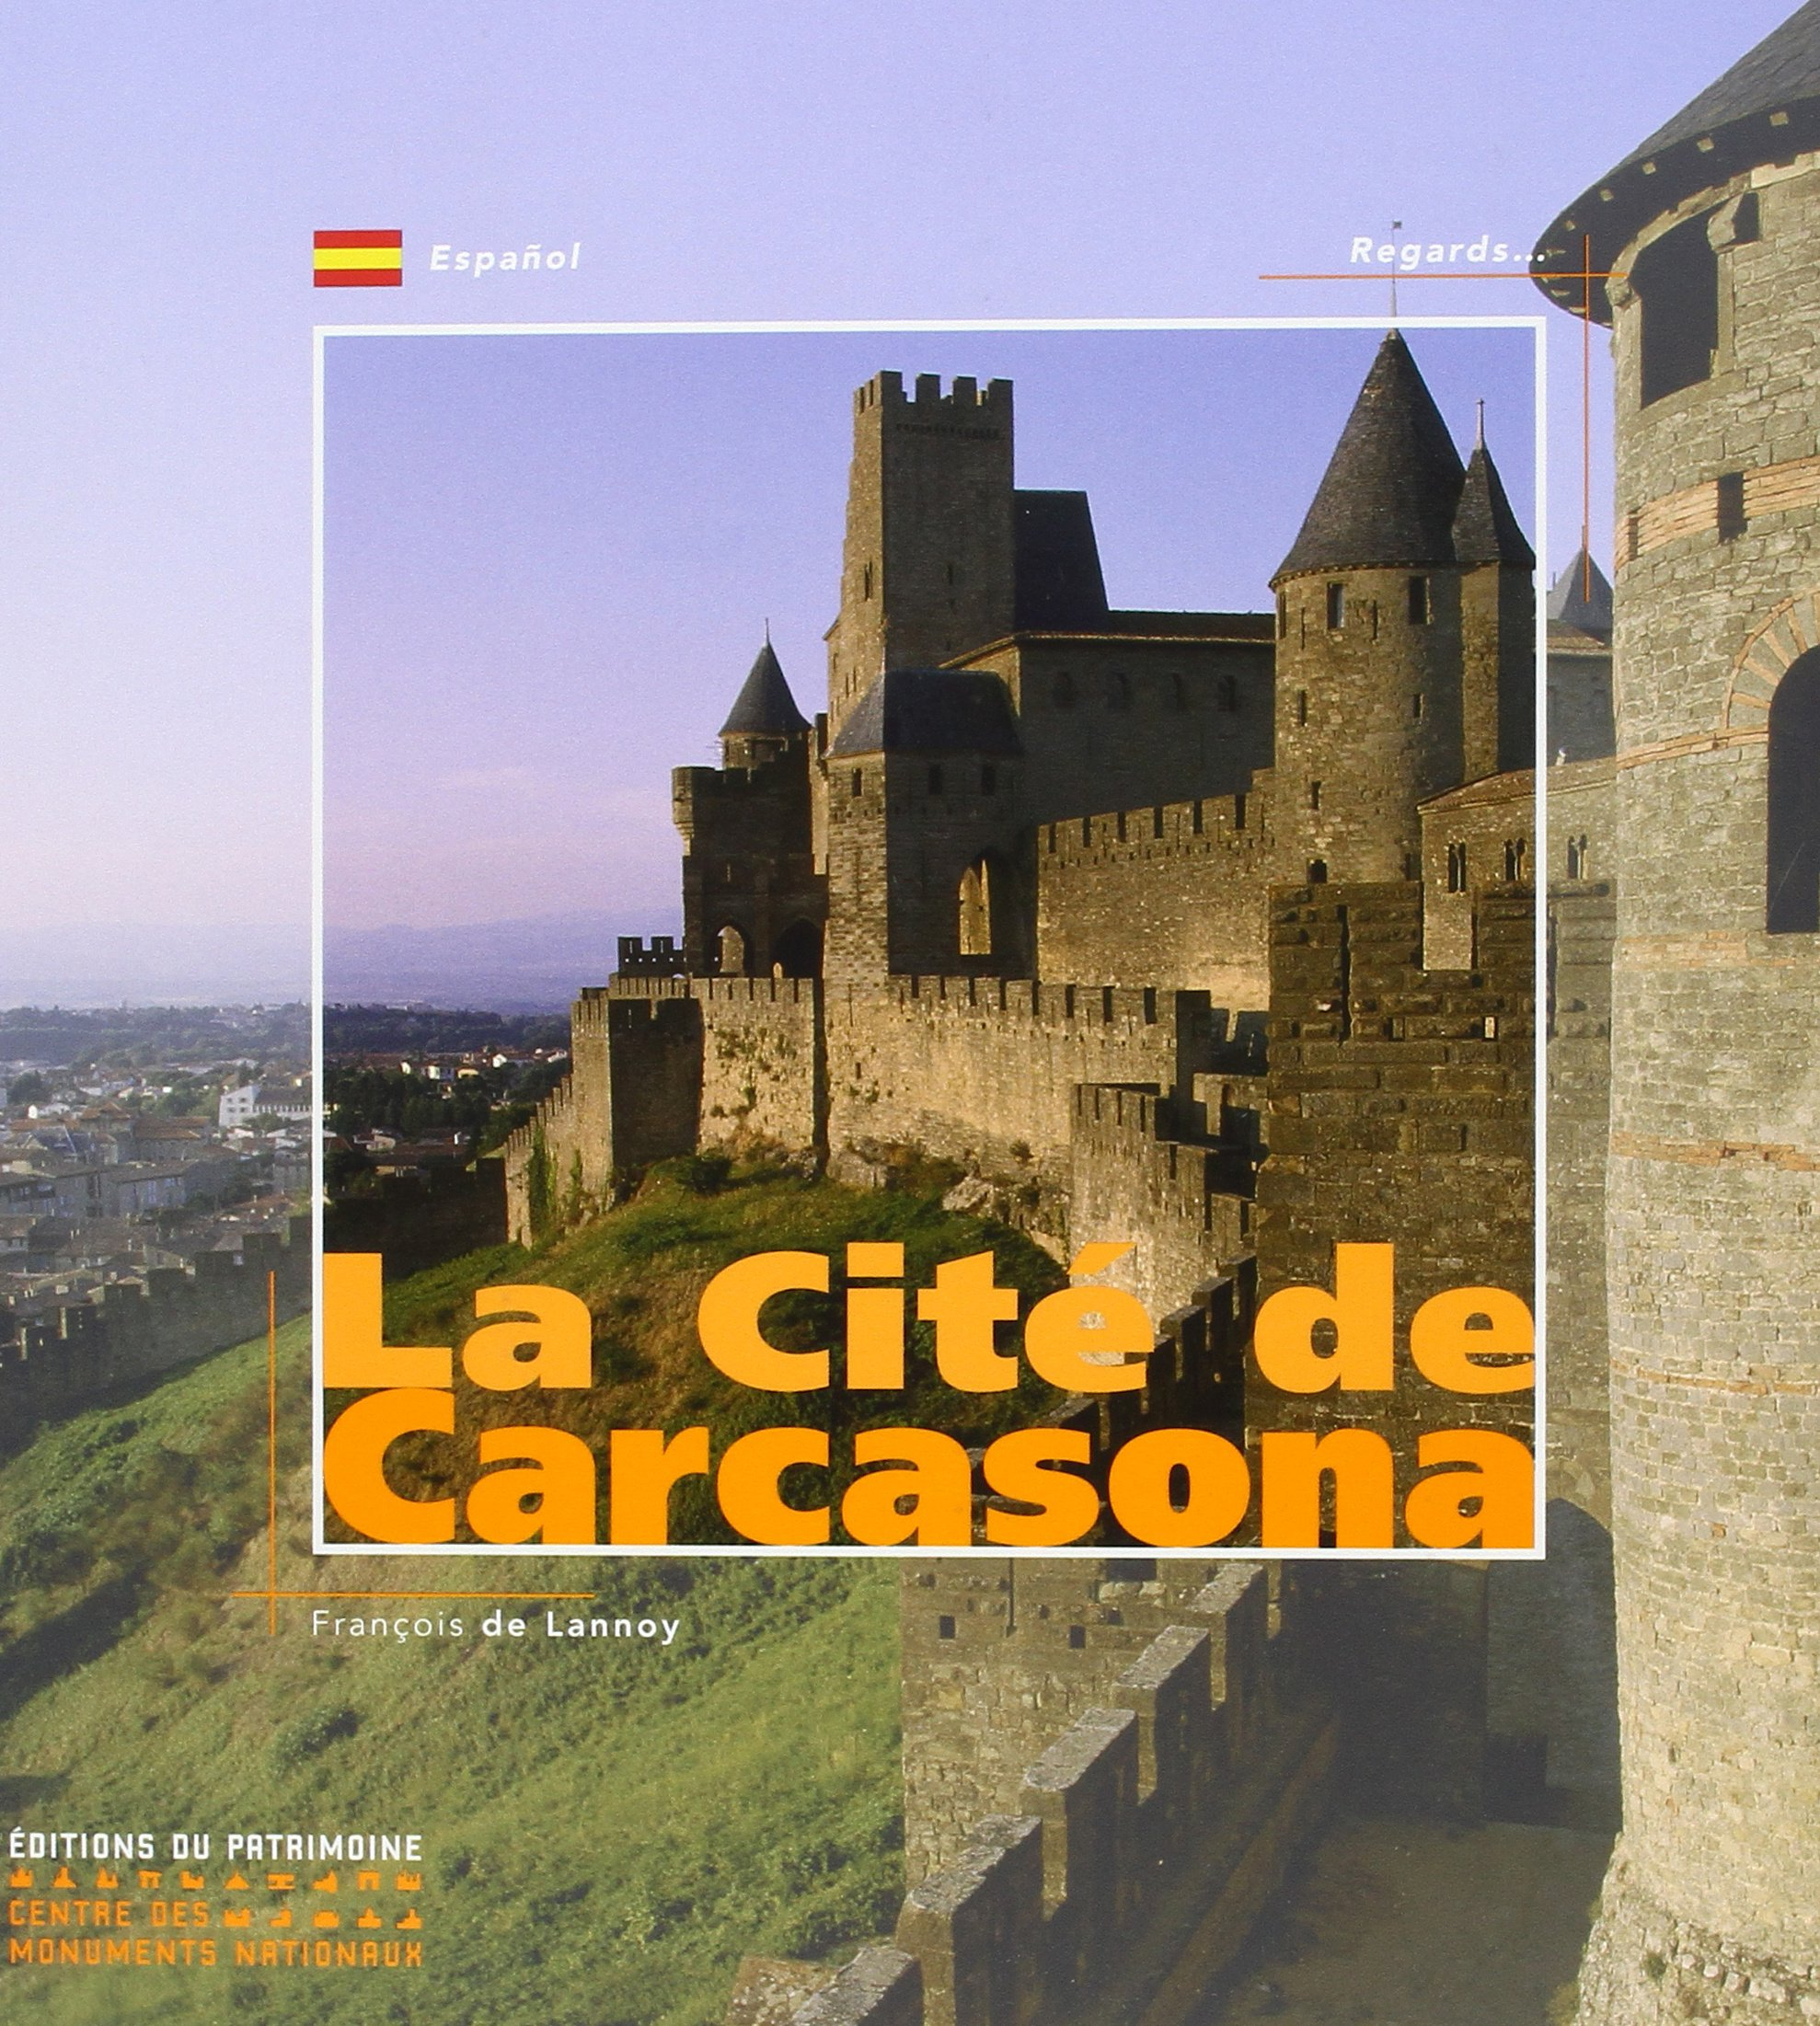 La Cite de Carcassonne (Version Espagnole) (Regards): Amazon.es: Delaunay François: Libros en idiomas extranjeros